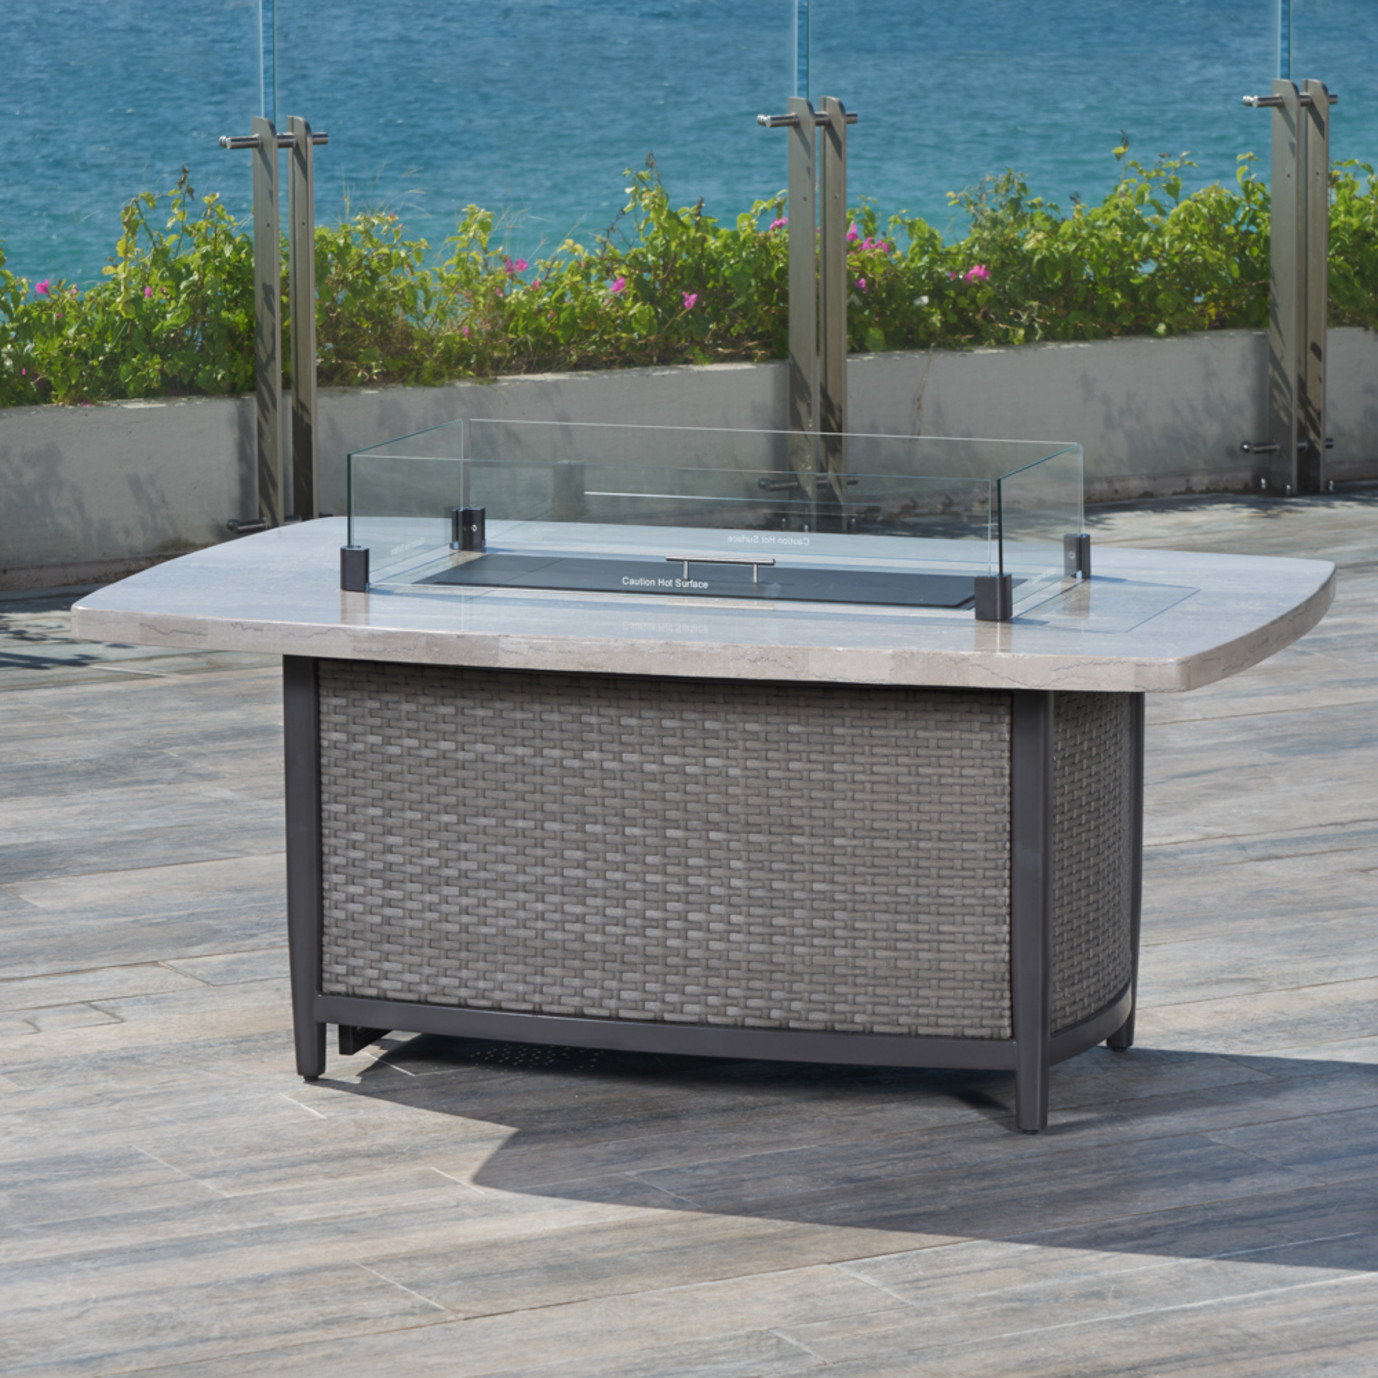 Vistano™ 28x58in Stone Top Fire Table